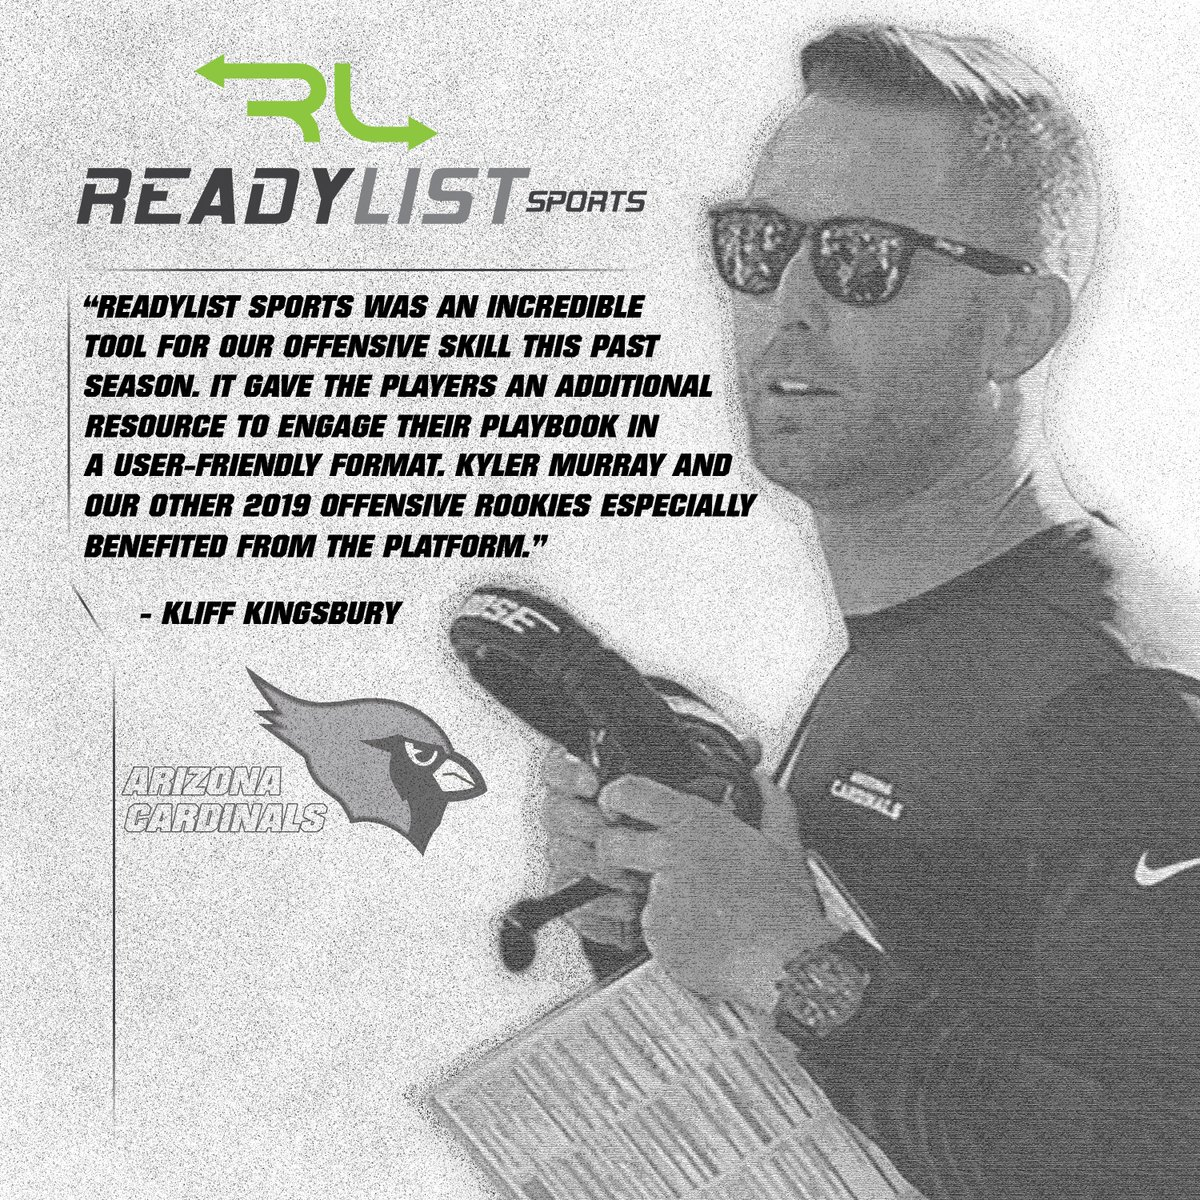 We were pleased to witness how our playbook and learning app helped the Arizona Cardinals. We can help your team, too. Follow this link: https://t.co/W3mxeSqFz1  Check the graphic to see what head coach Kliff Kingsbury had to say ⬇️ #Playbook #NFL #Cardinals https://t.co/xkegzRDXUq